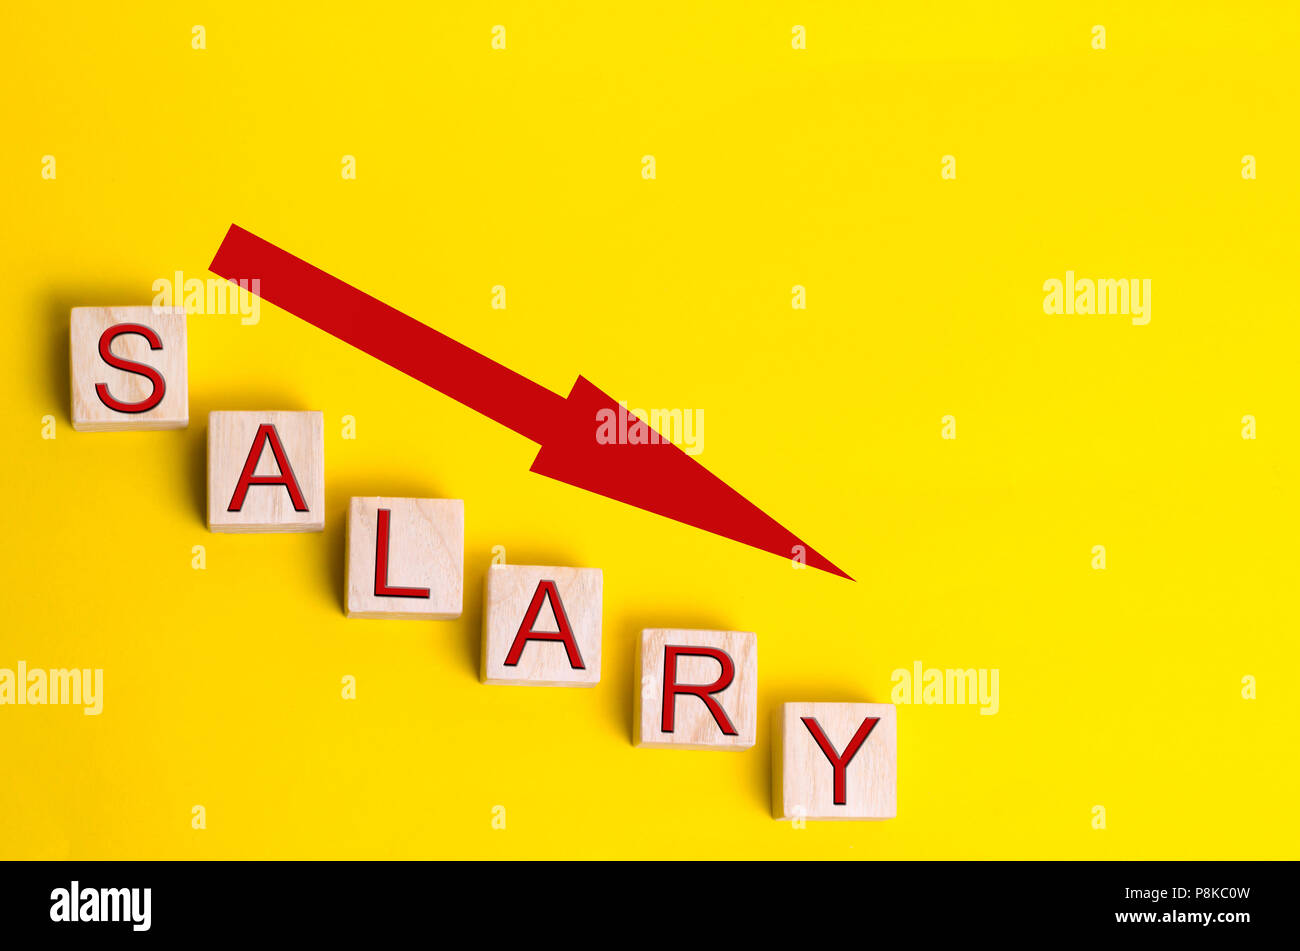 lower salary, wage rates. demotion, career decline. lowering the standard of living. wage cuts - Stock Image